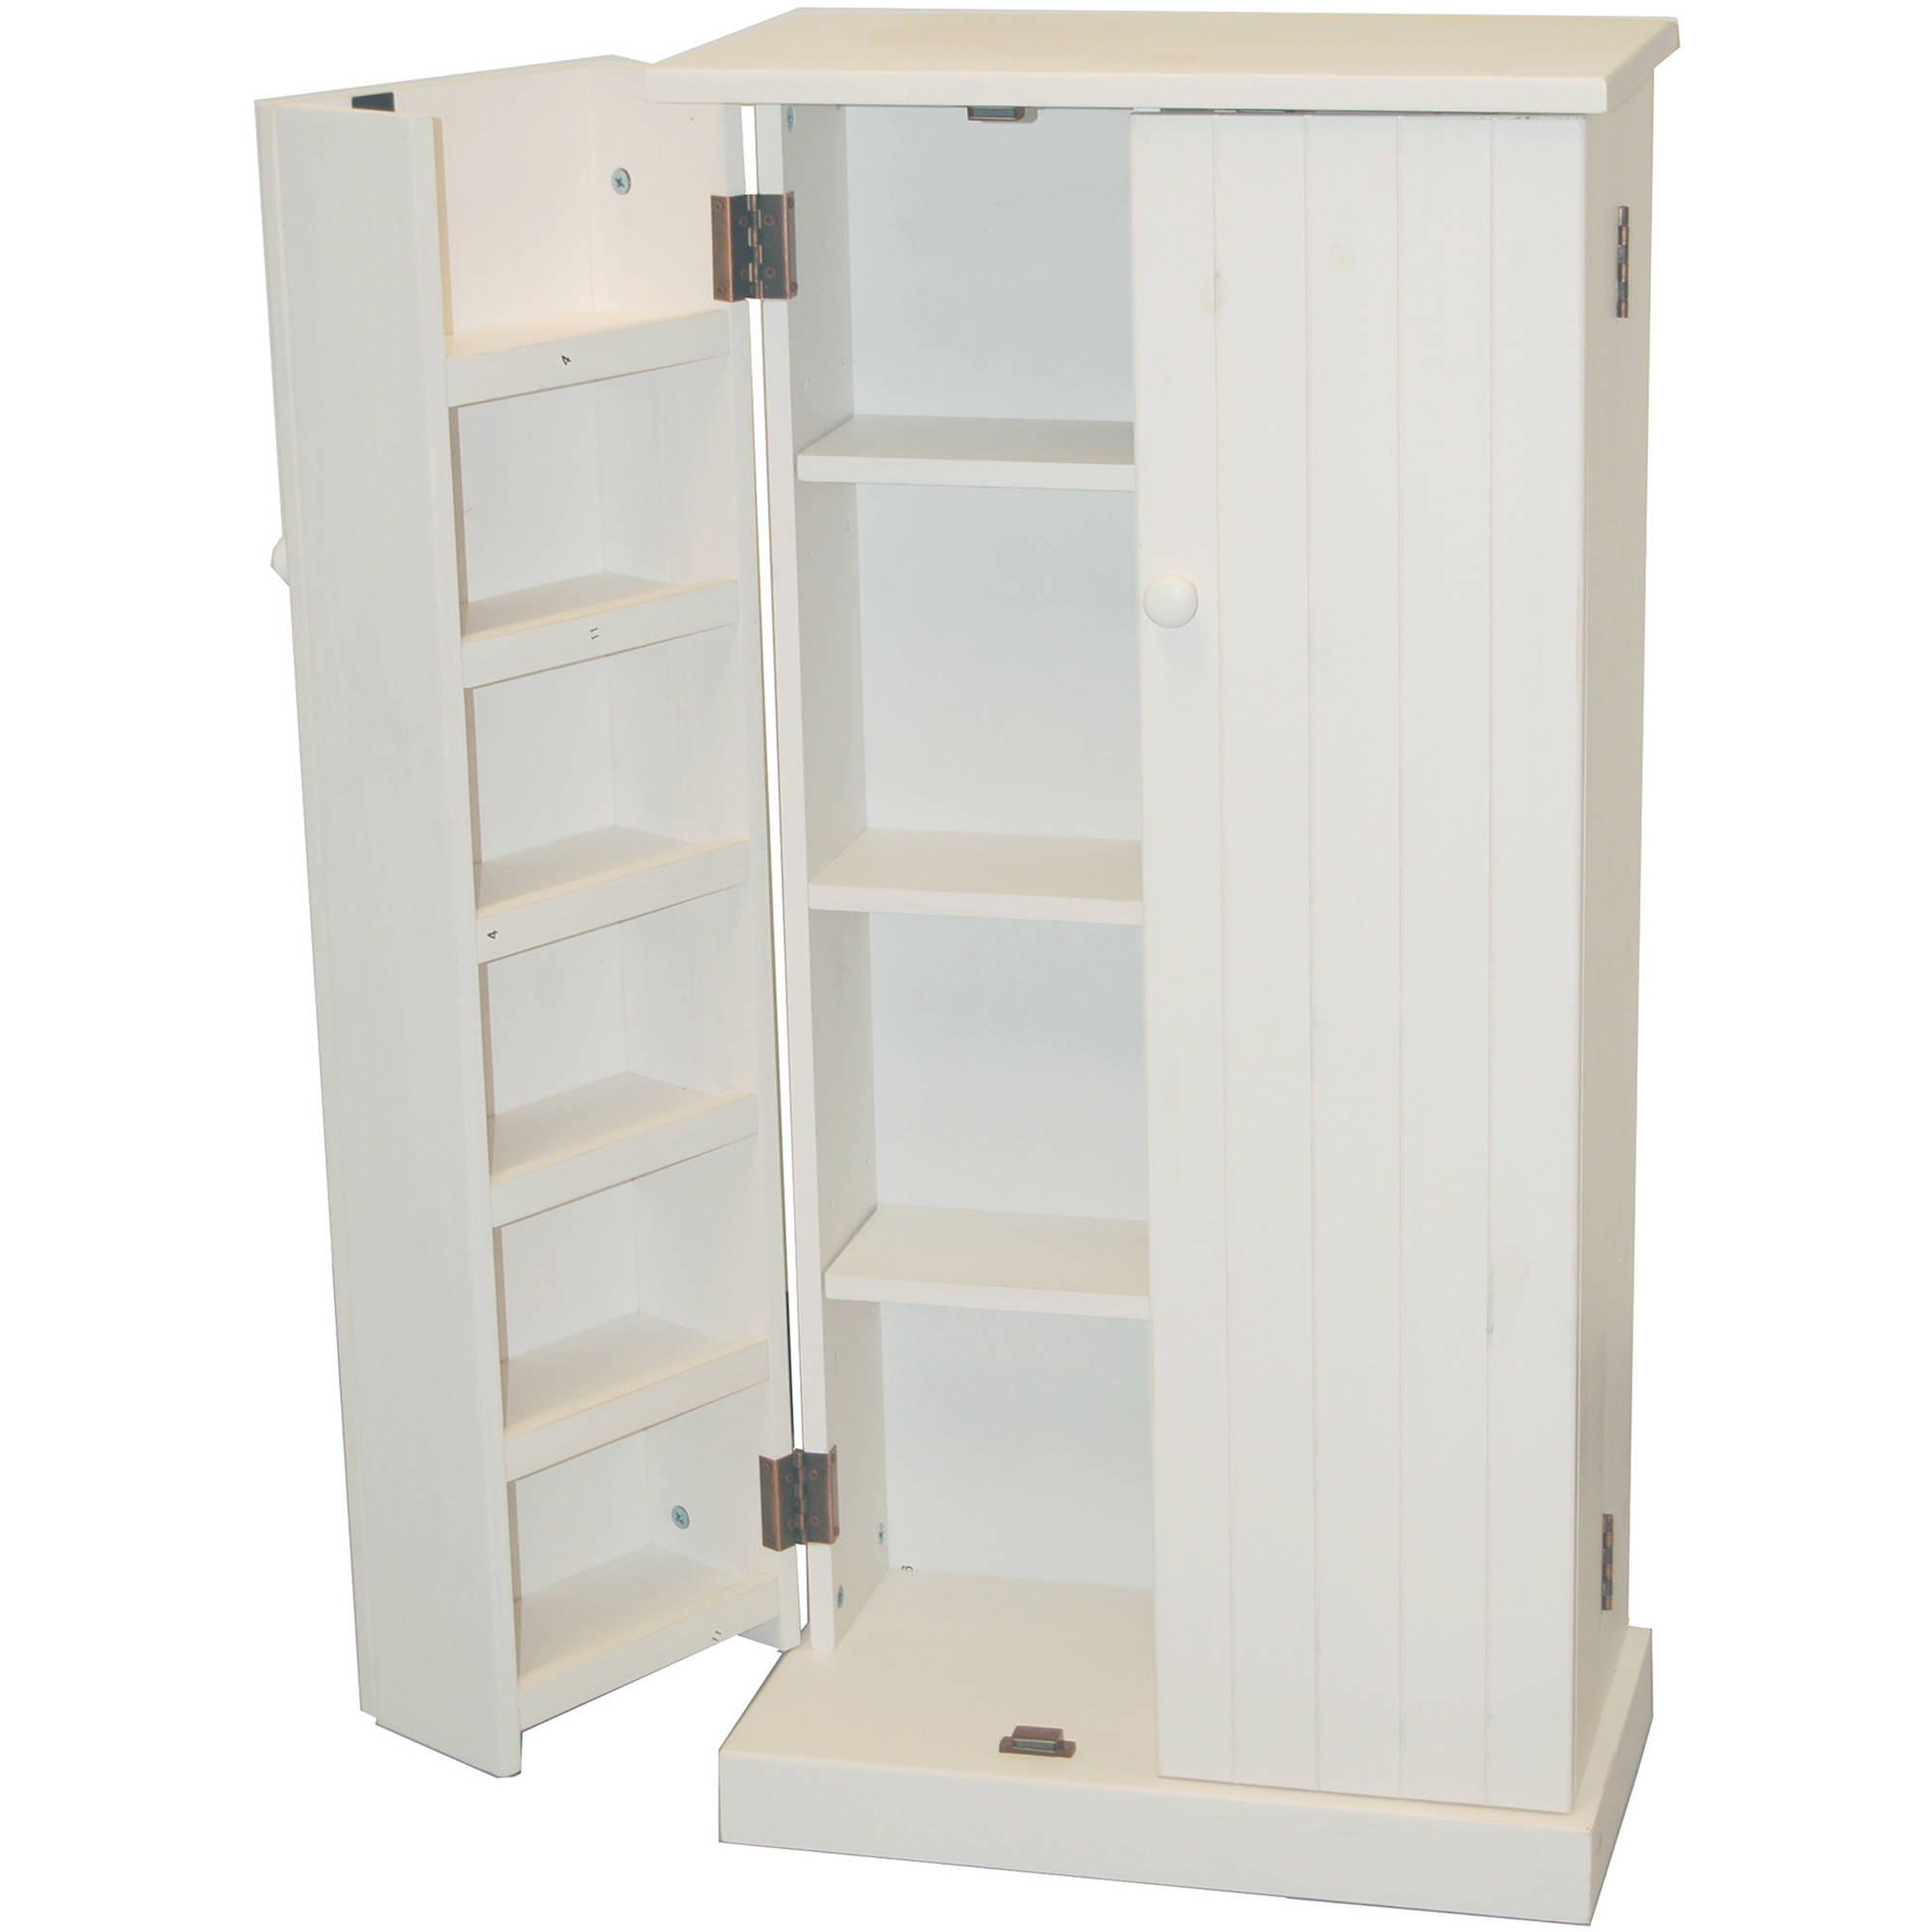 High Quality Versatile Pantry, White   Walmart.com